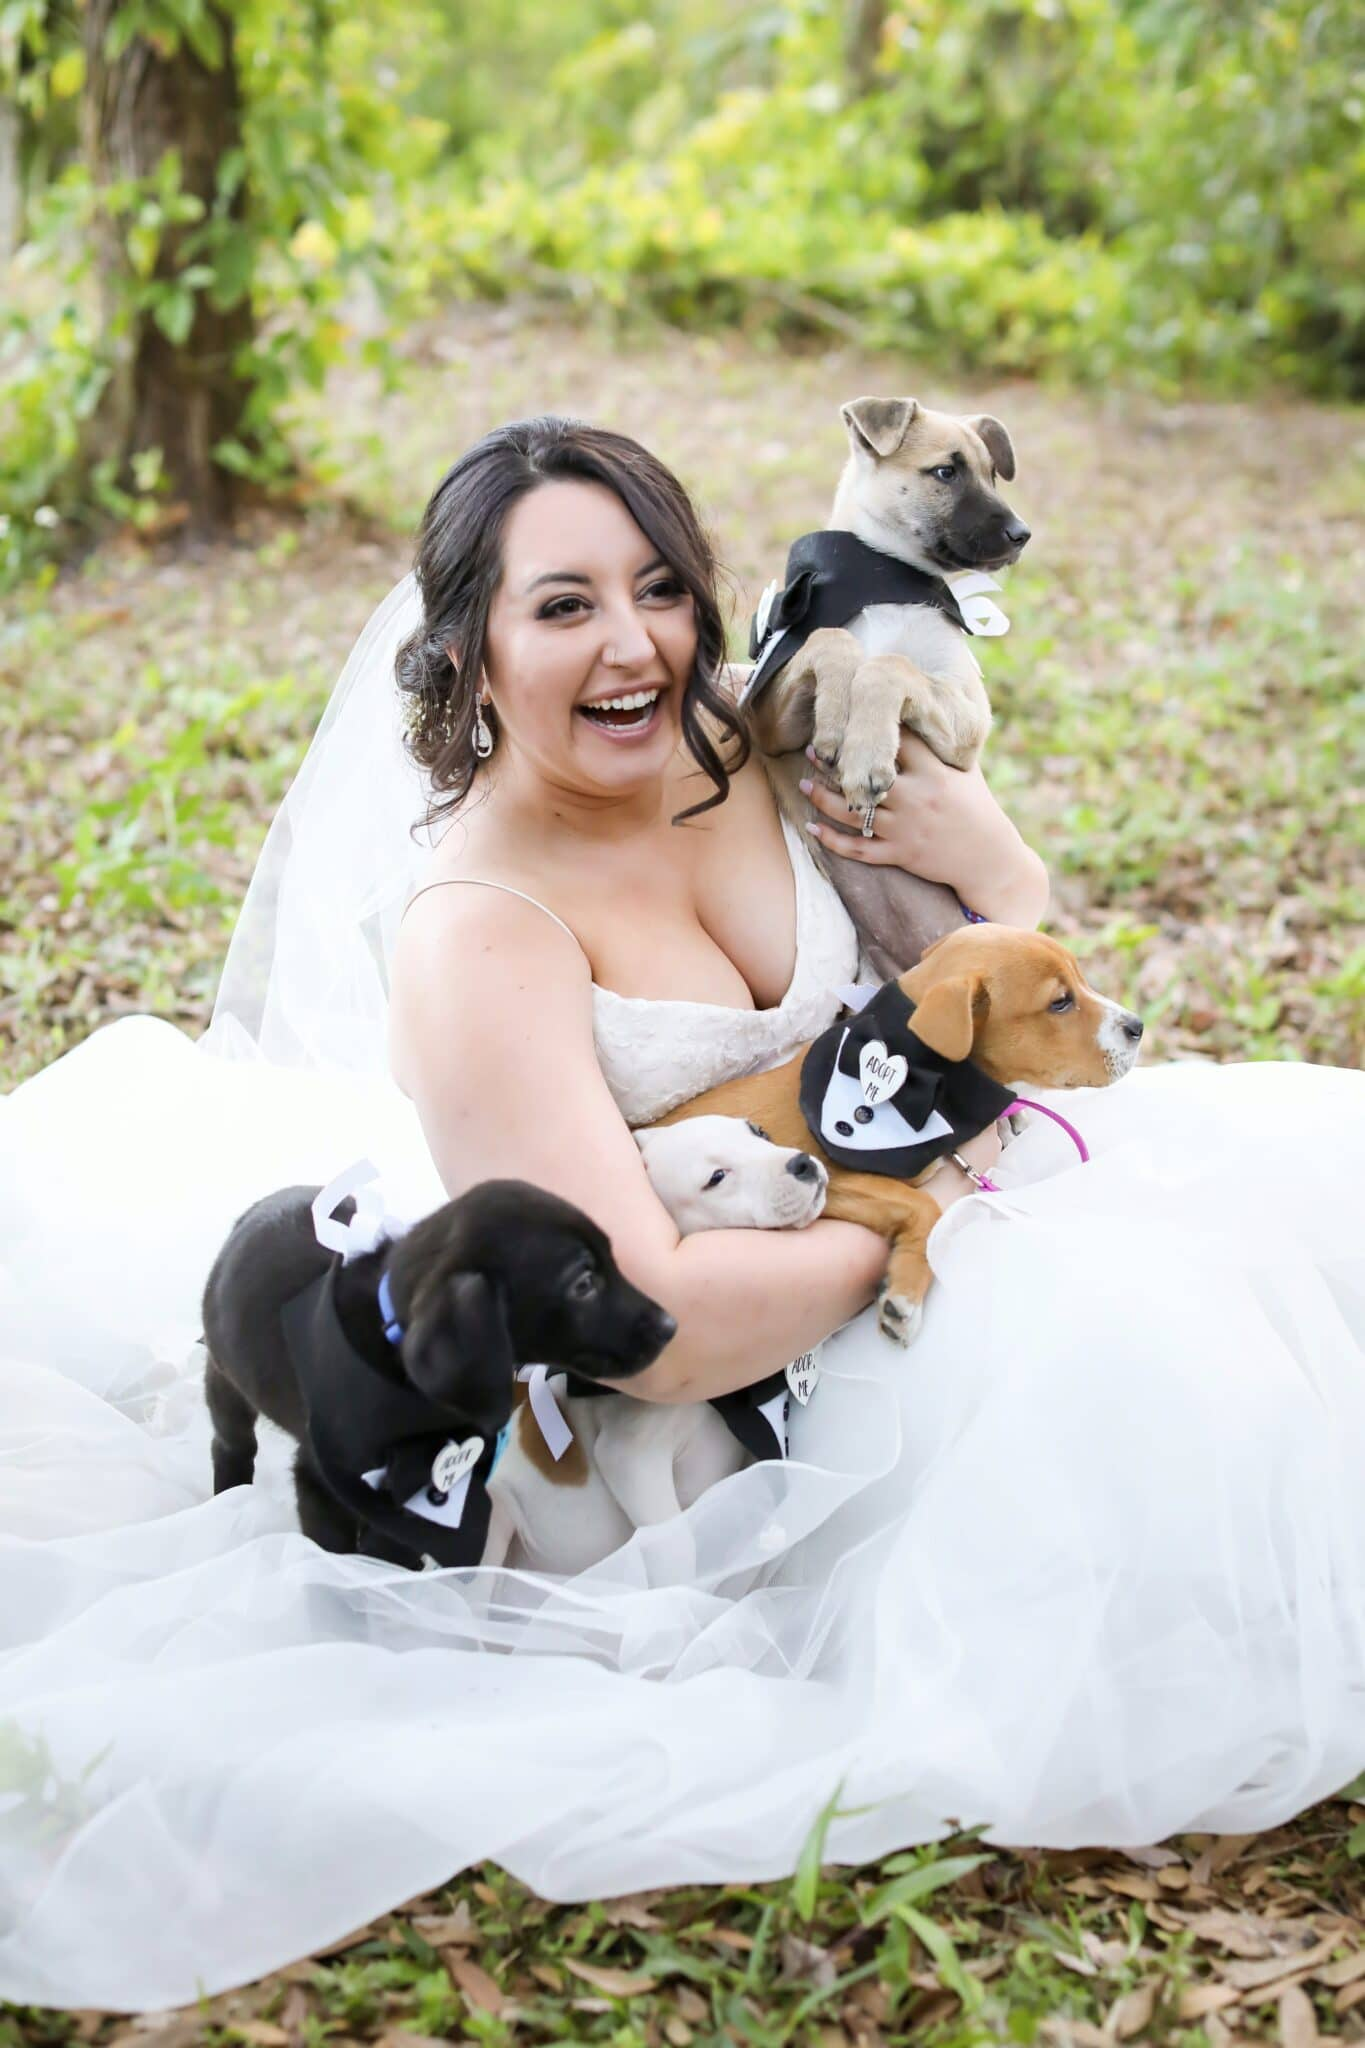 bride witting in gown holding 2 puppies